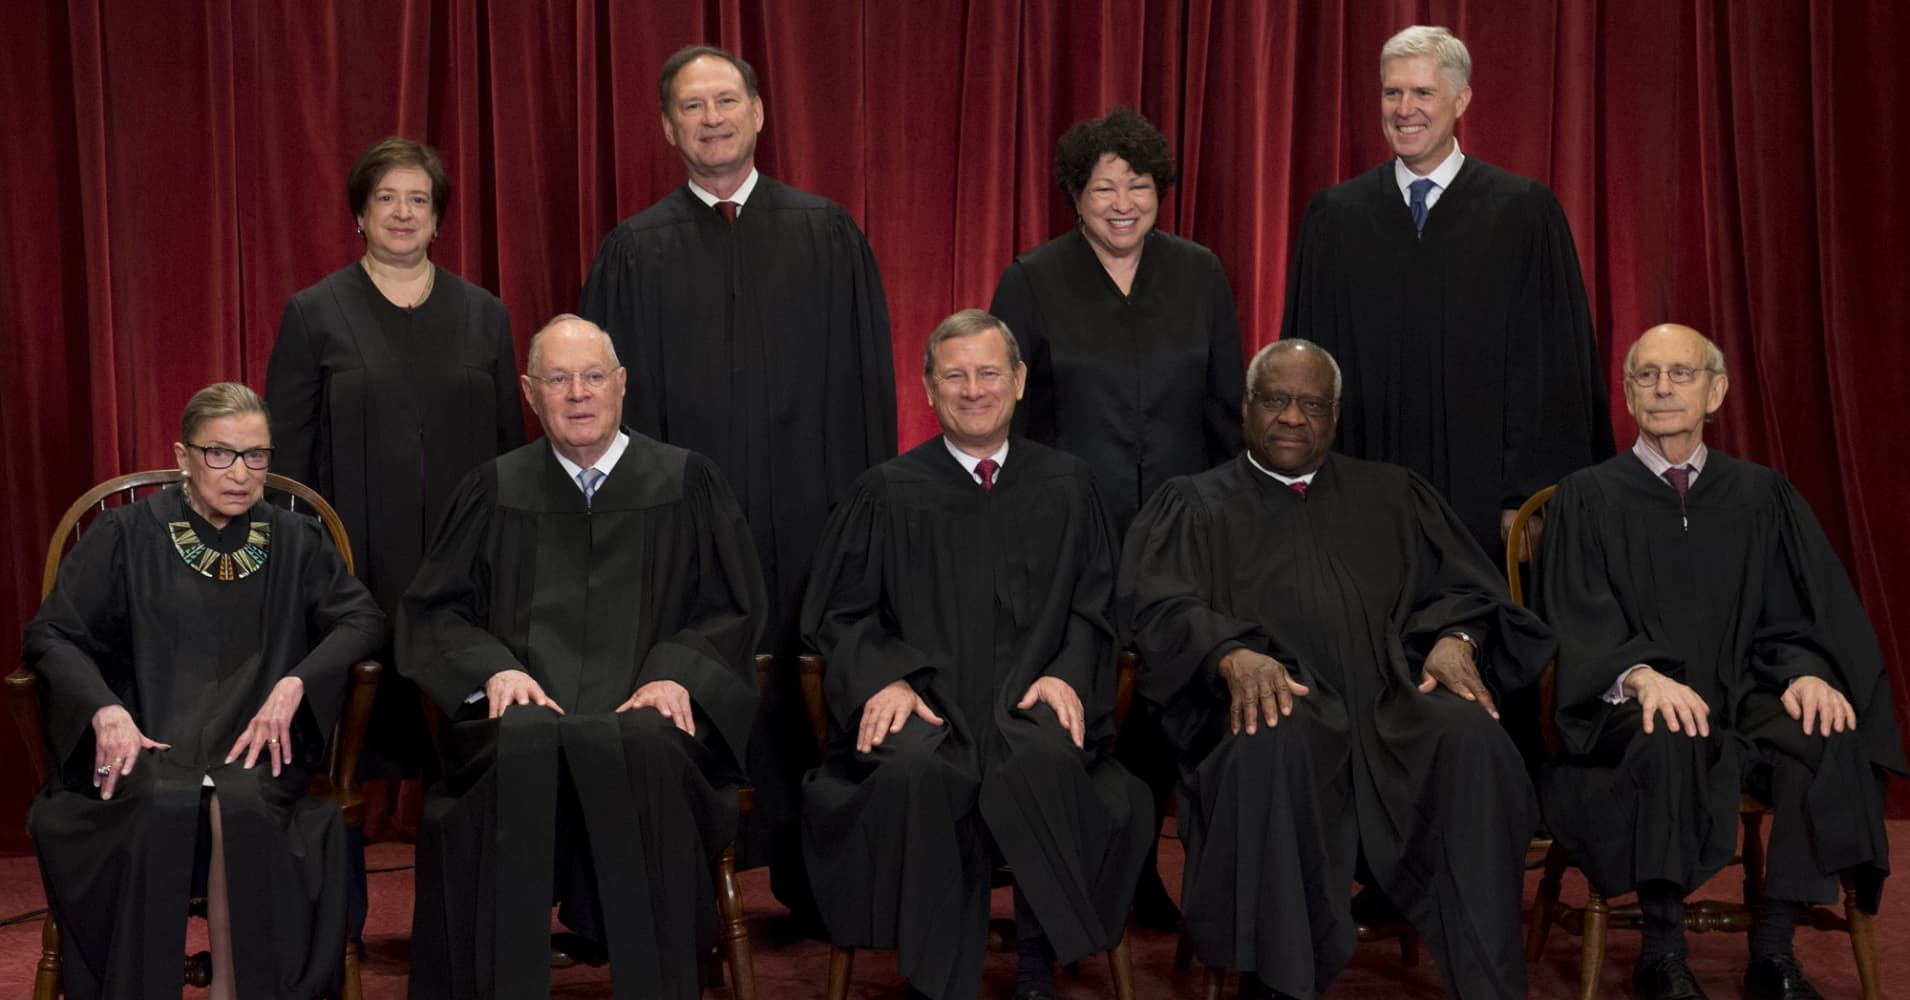 95 percent of Supreme Court justices have been white men